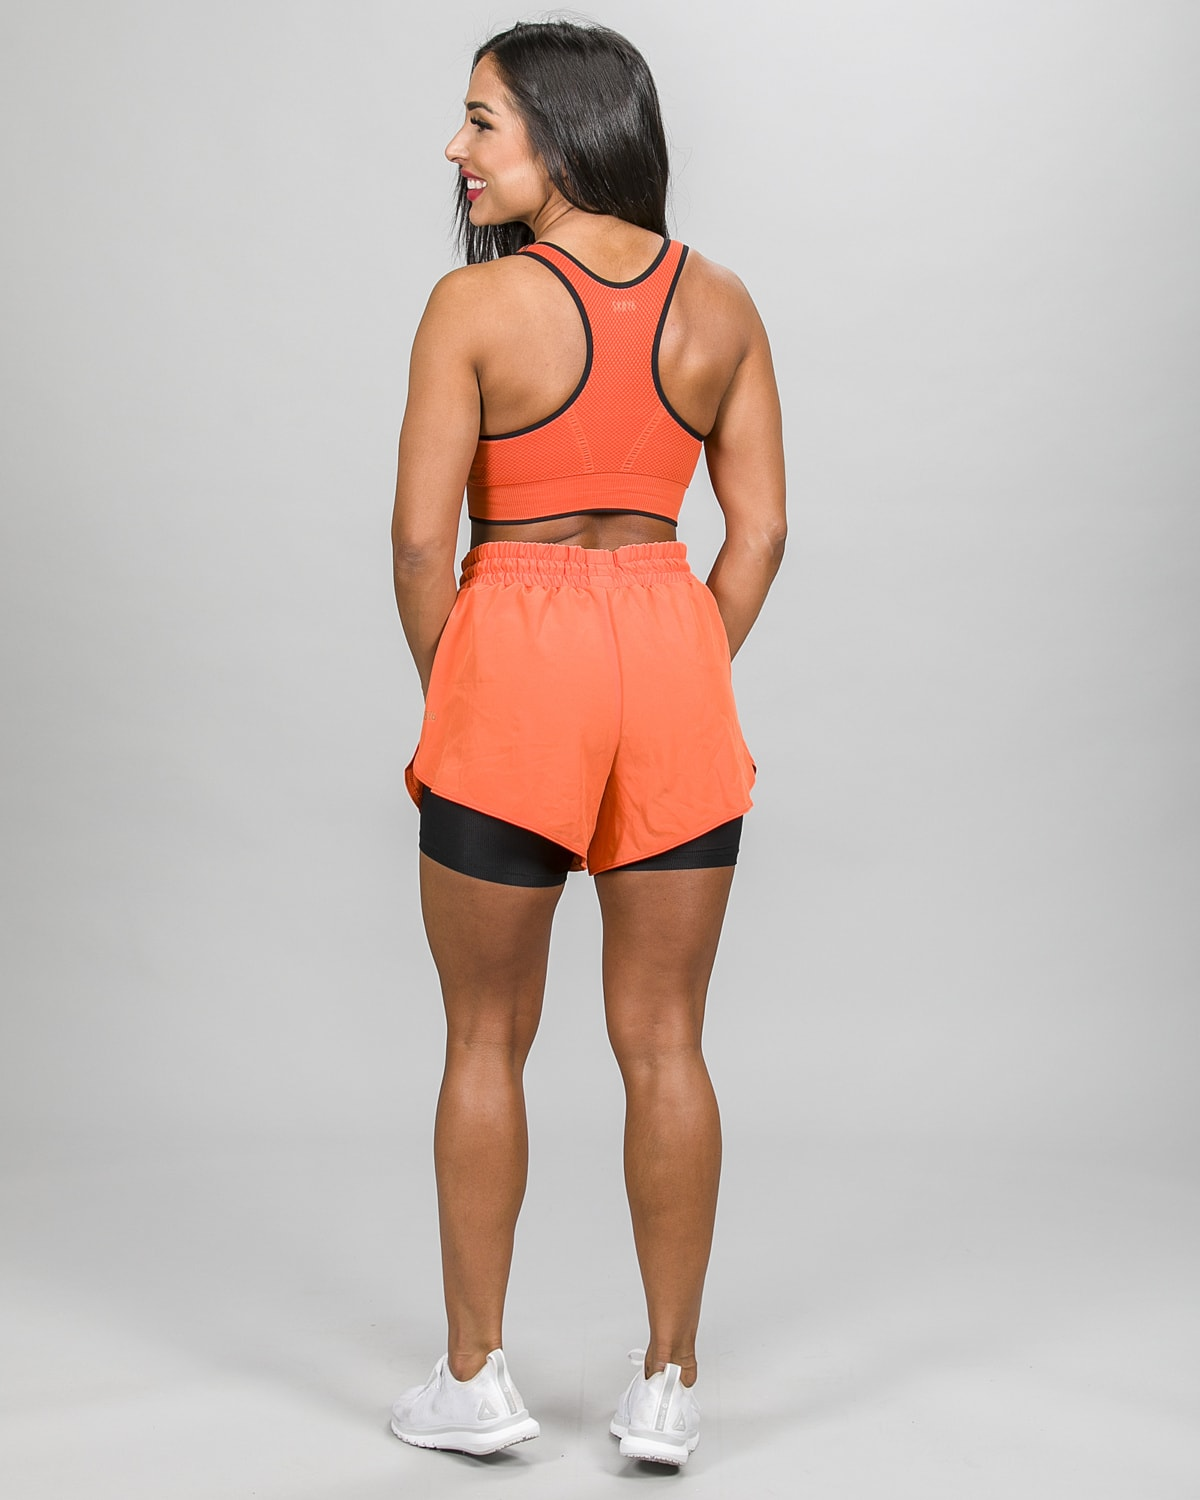 Skiny SK86 Shorts 083111and Crop Top 083094- Blazing Orange f